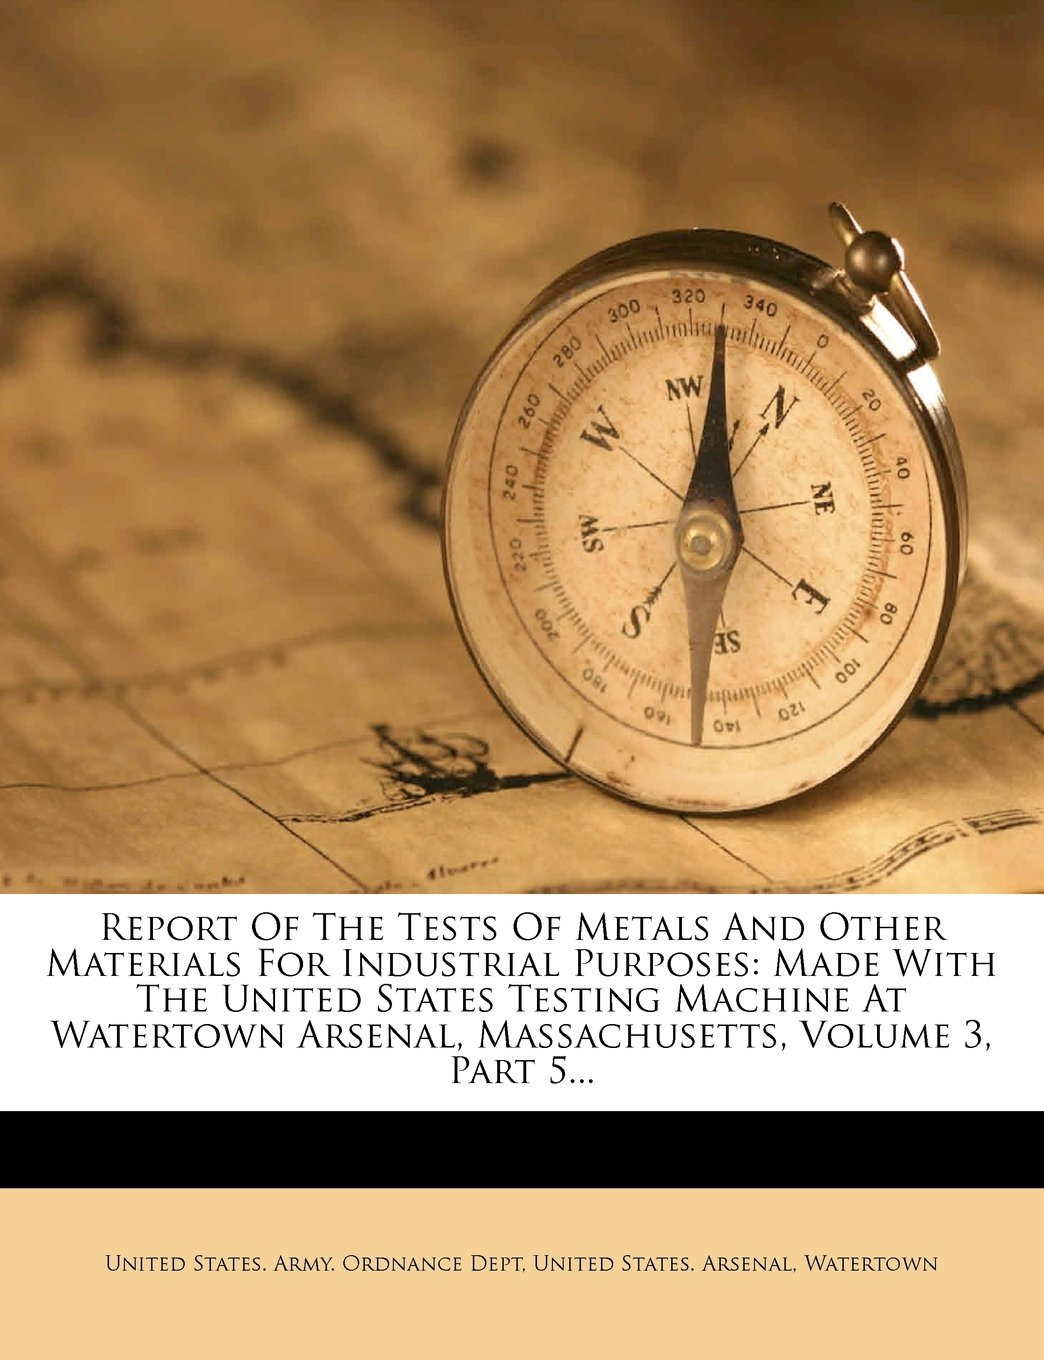 Download Report Of The Tests Of Metals And Other Materials For Industrial Purposes: Made With The United States Testing Machine At Watertown Arsenal, Massachusetts, Volume 3, Part 5... pdf